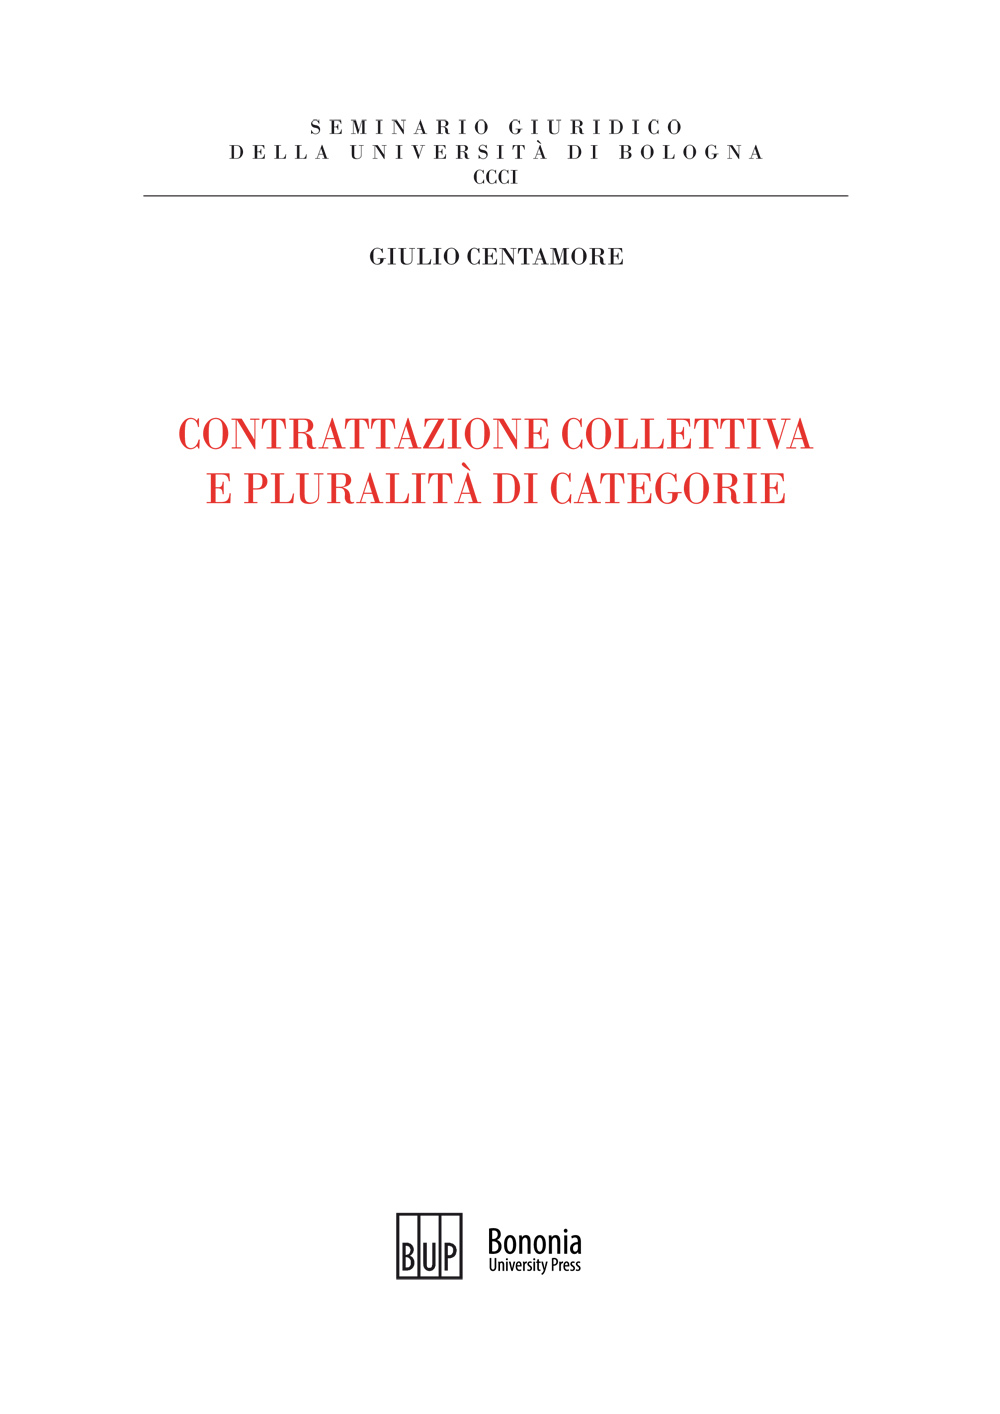 Contrattazione collettiva e pluralità di categorie - Bononia University Press